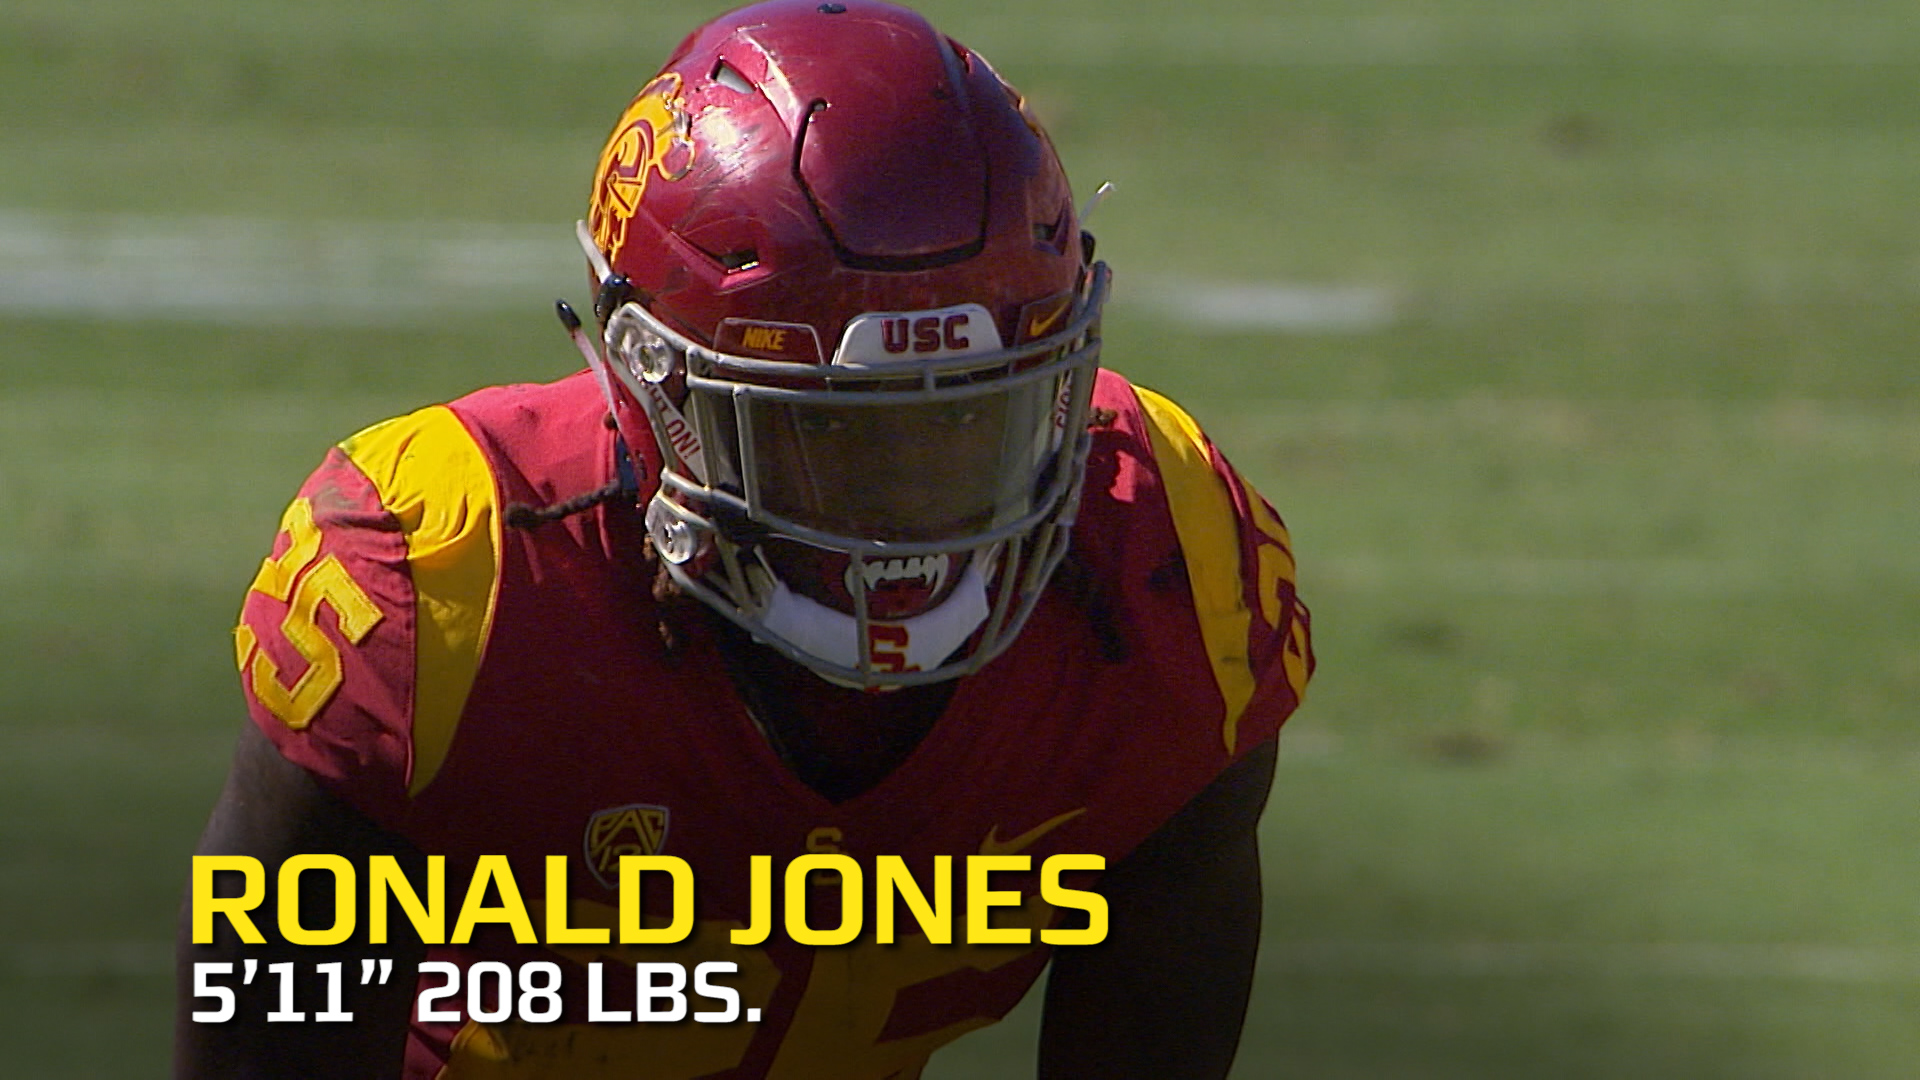 Ronald Jones Highlights Dynamic Rusher Ready To Make His Mark At Next Level Pac 12